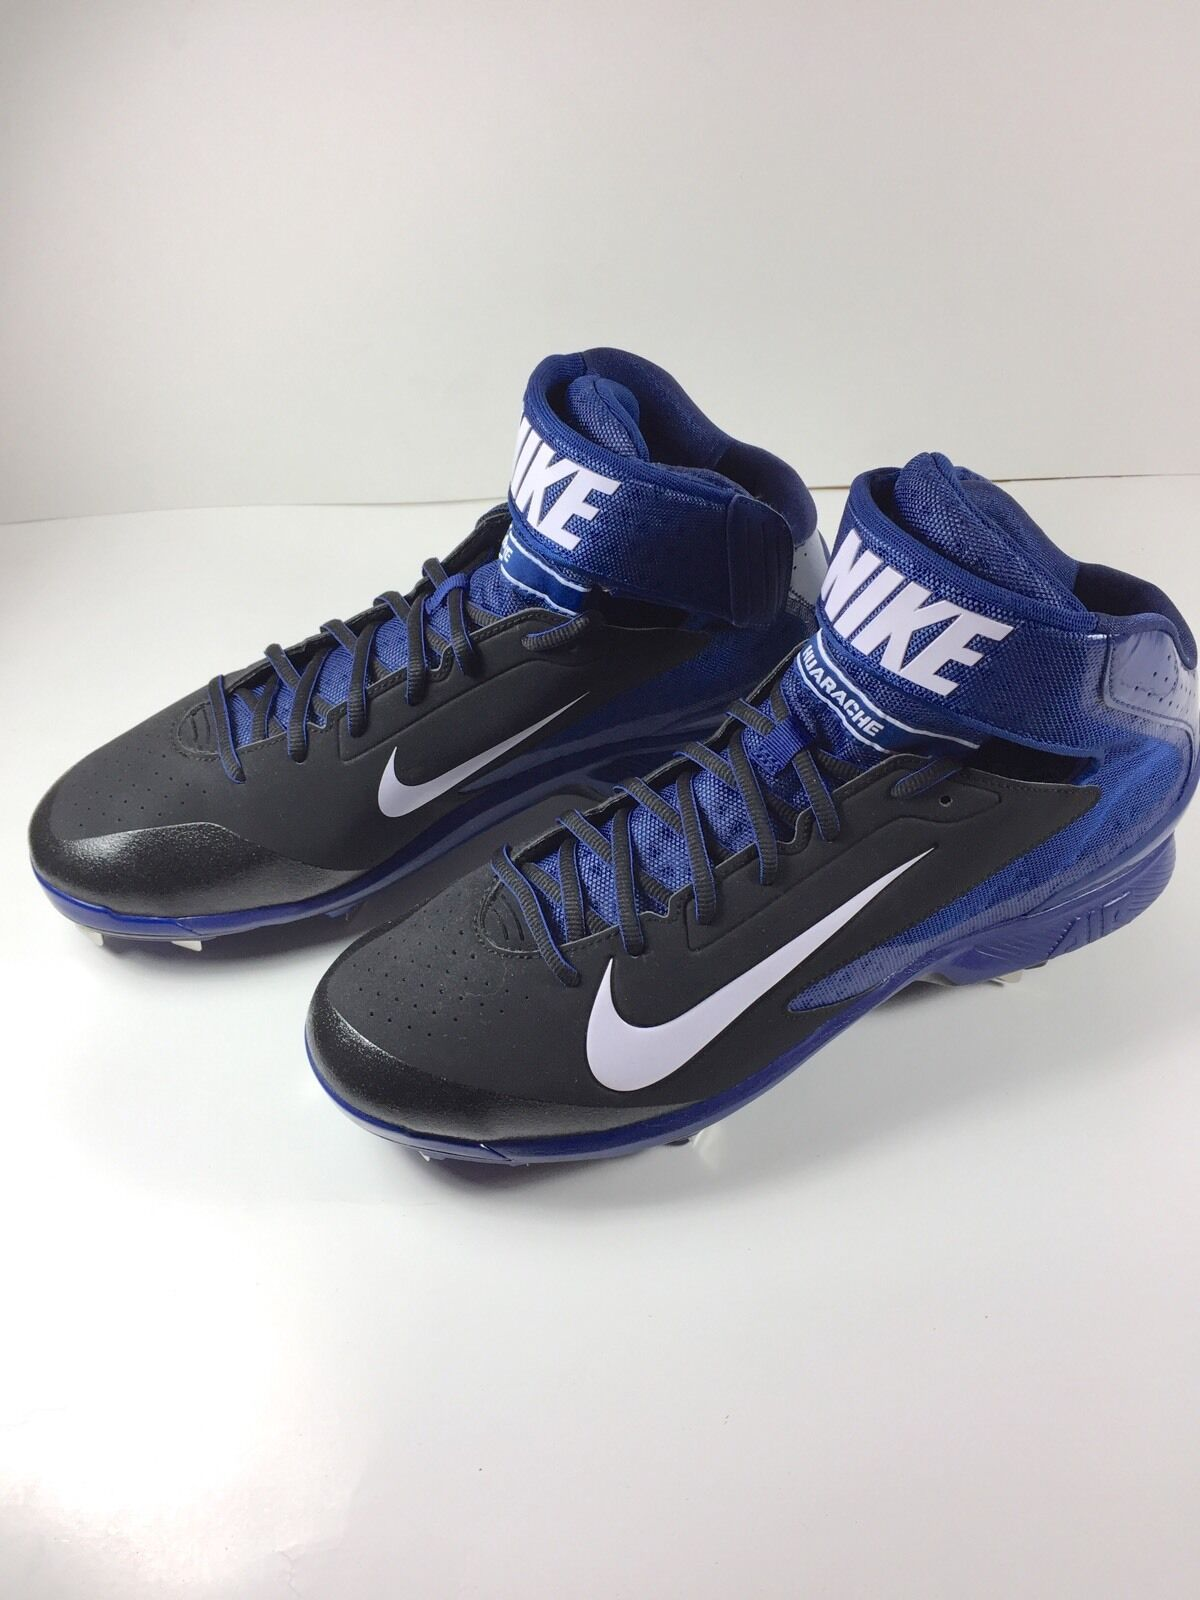 New Nike Air Huarache Mid Mens Pro Baseball Cleats Shoes Comfortable Comfortable and good-looking